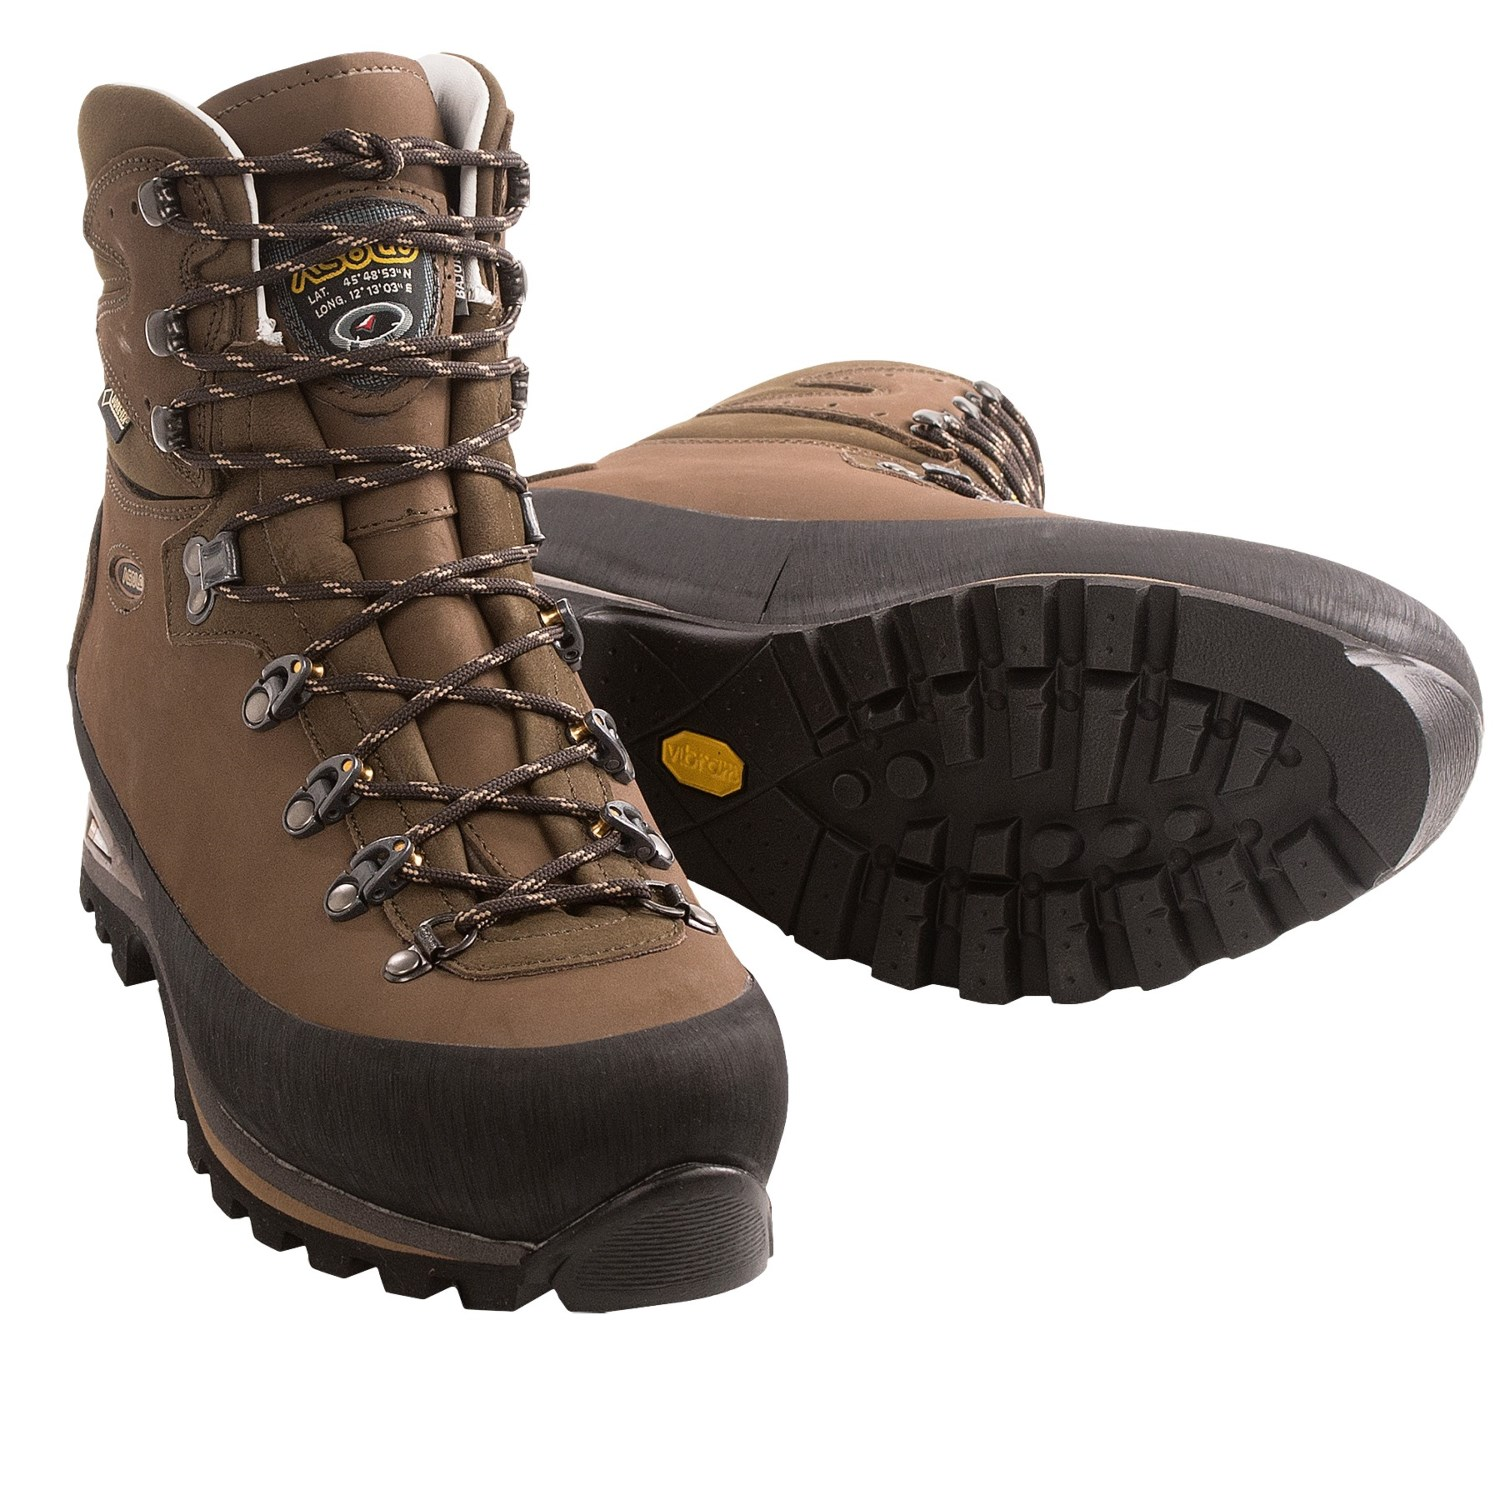 Asolo Bajura Gore Tex 174 Hiking Boots For Men 7597h Save 44